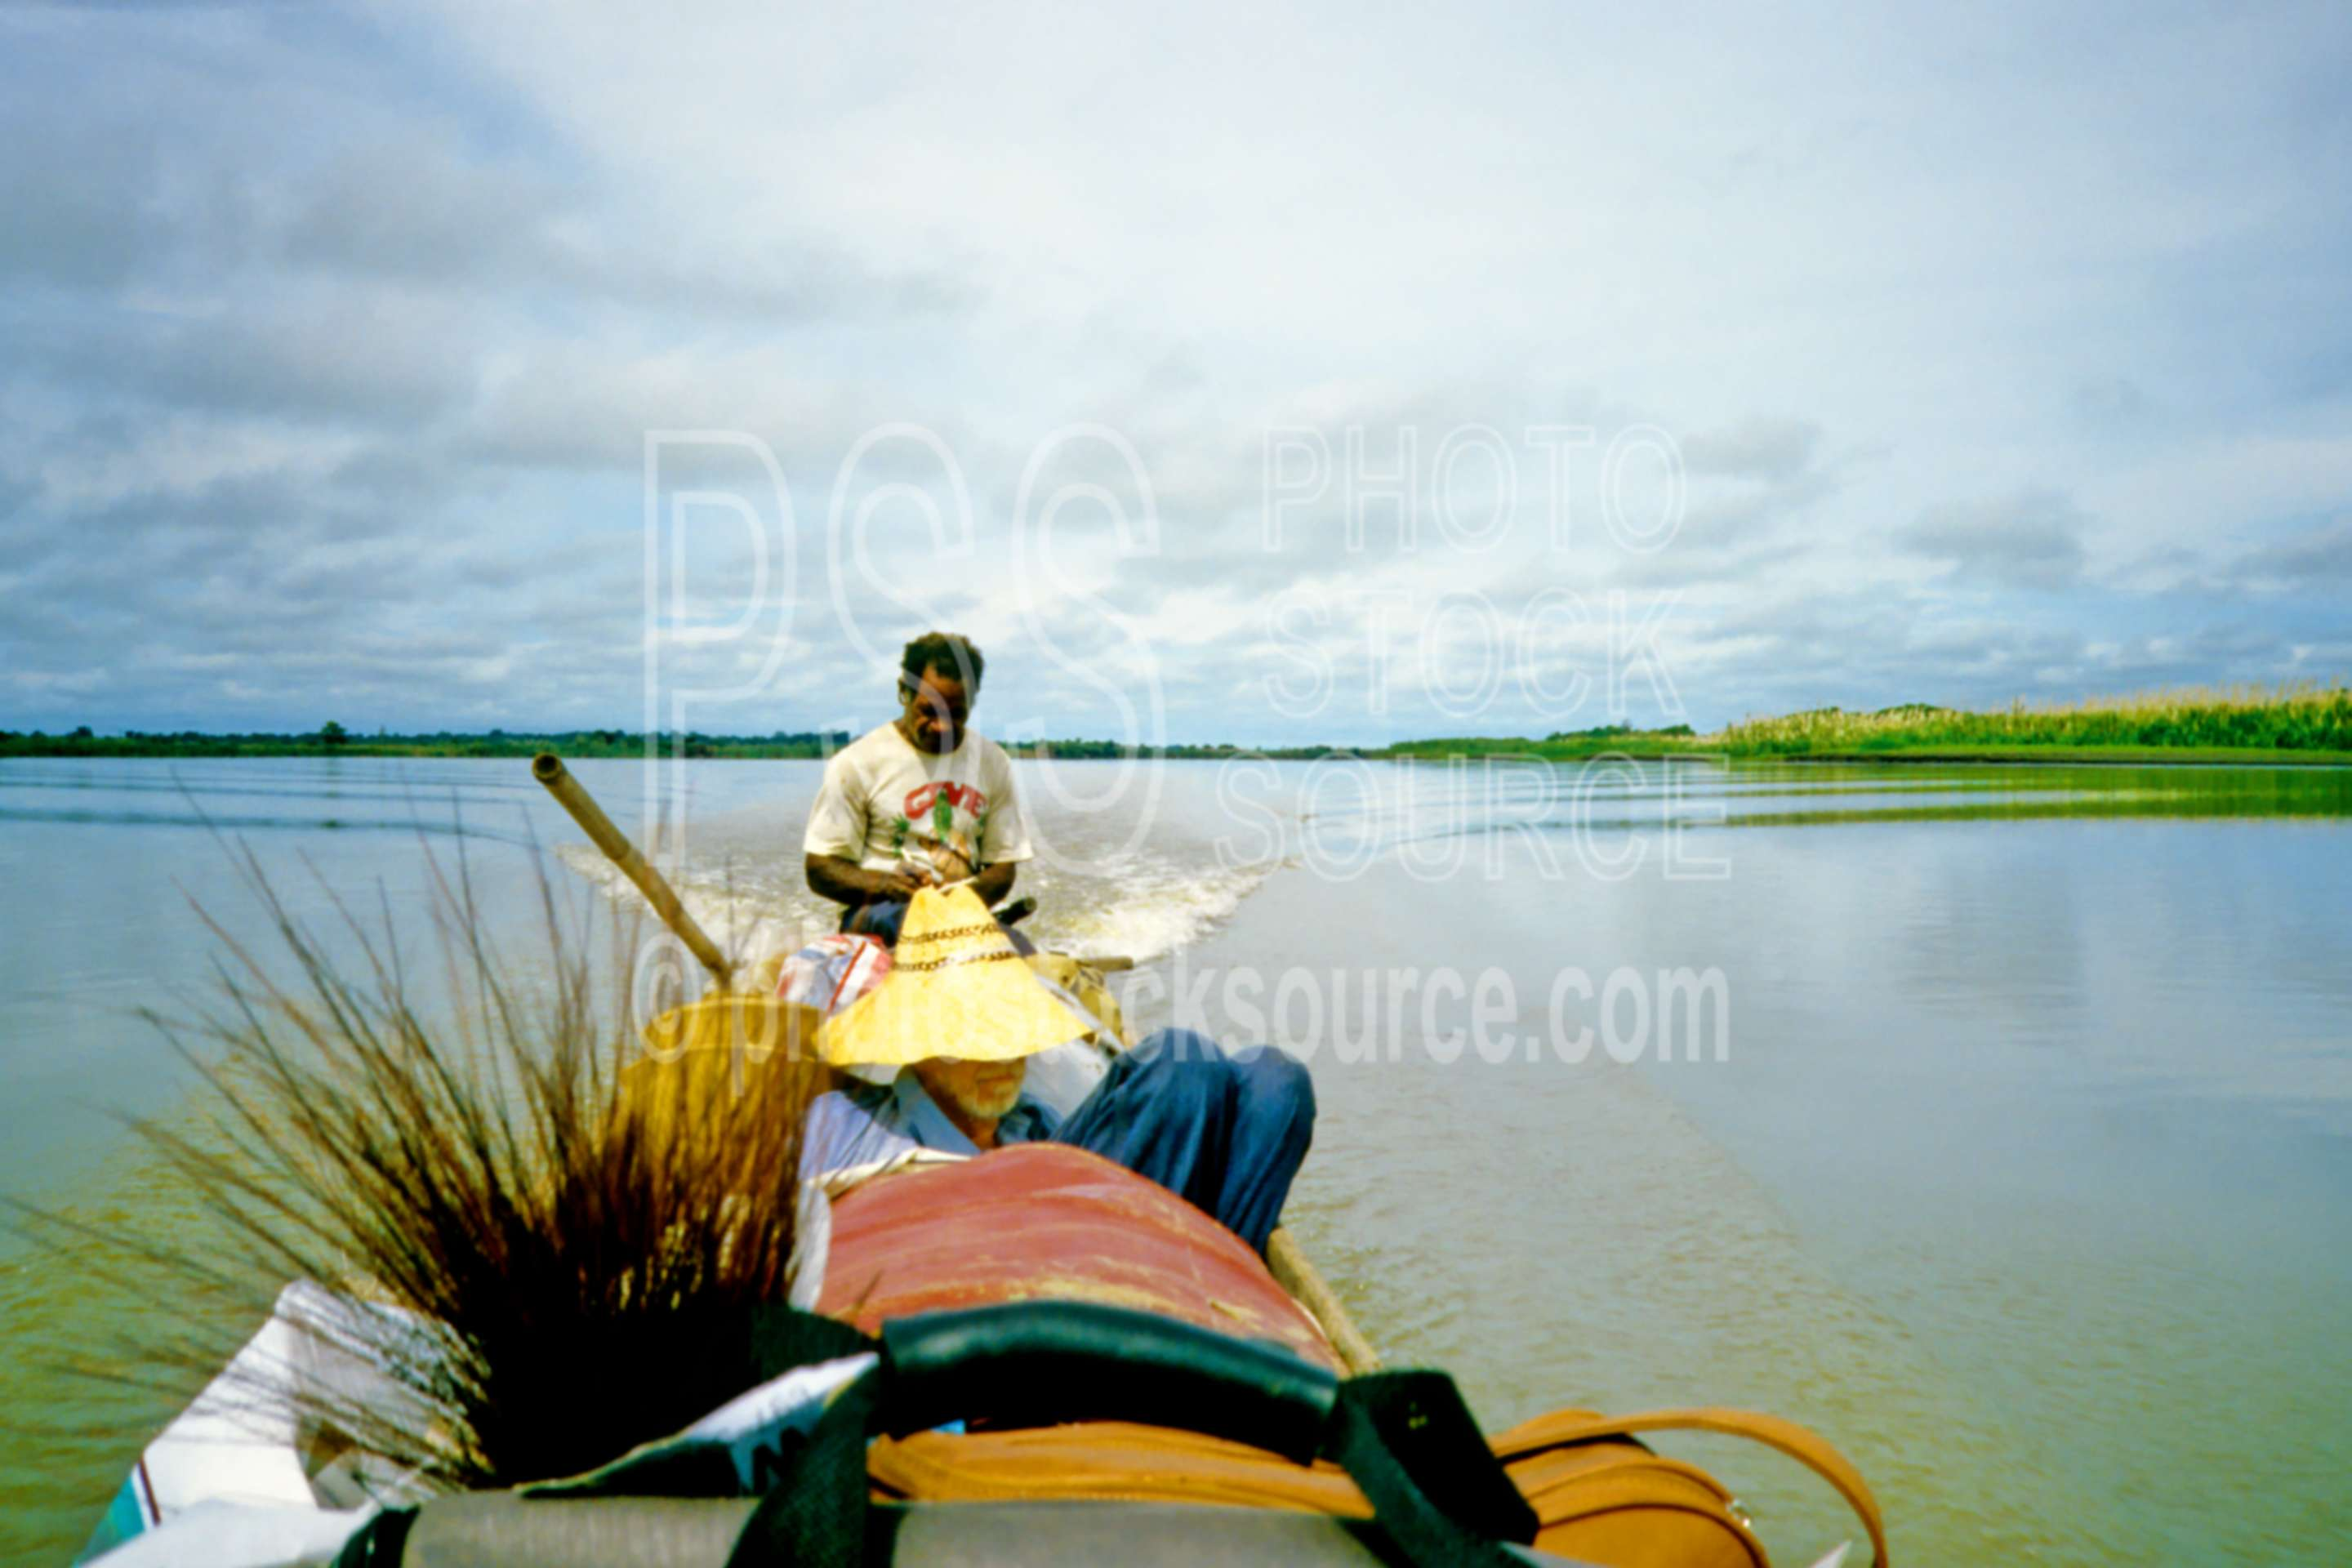 Adam the Boatman,canoe,river,mac ruff,boatman